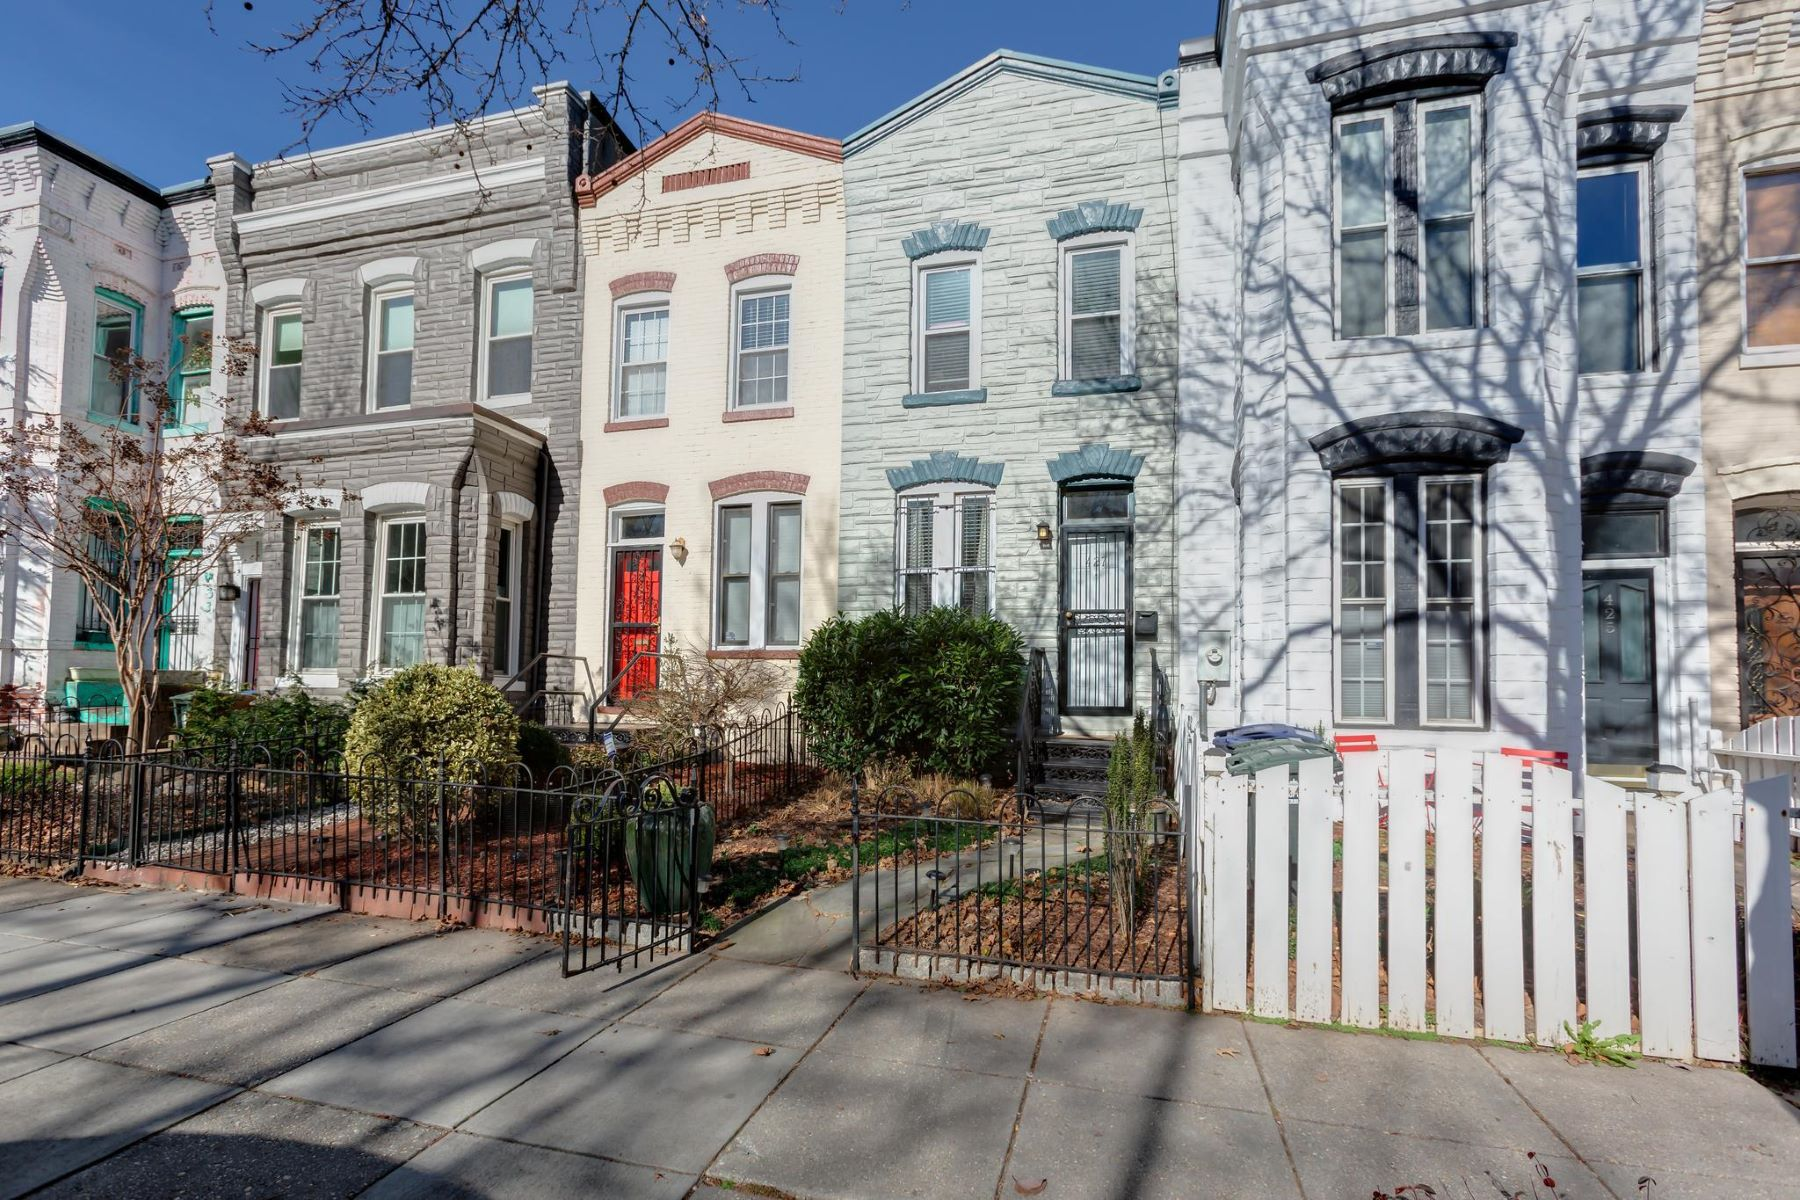 Townhouse for Sale at 427 Q St NW 427 Q St NW Washington, District Of Columbia 20001 United States